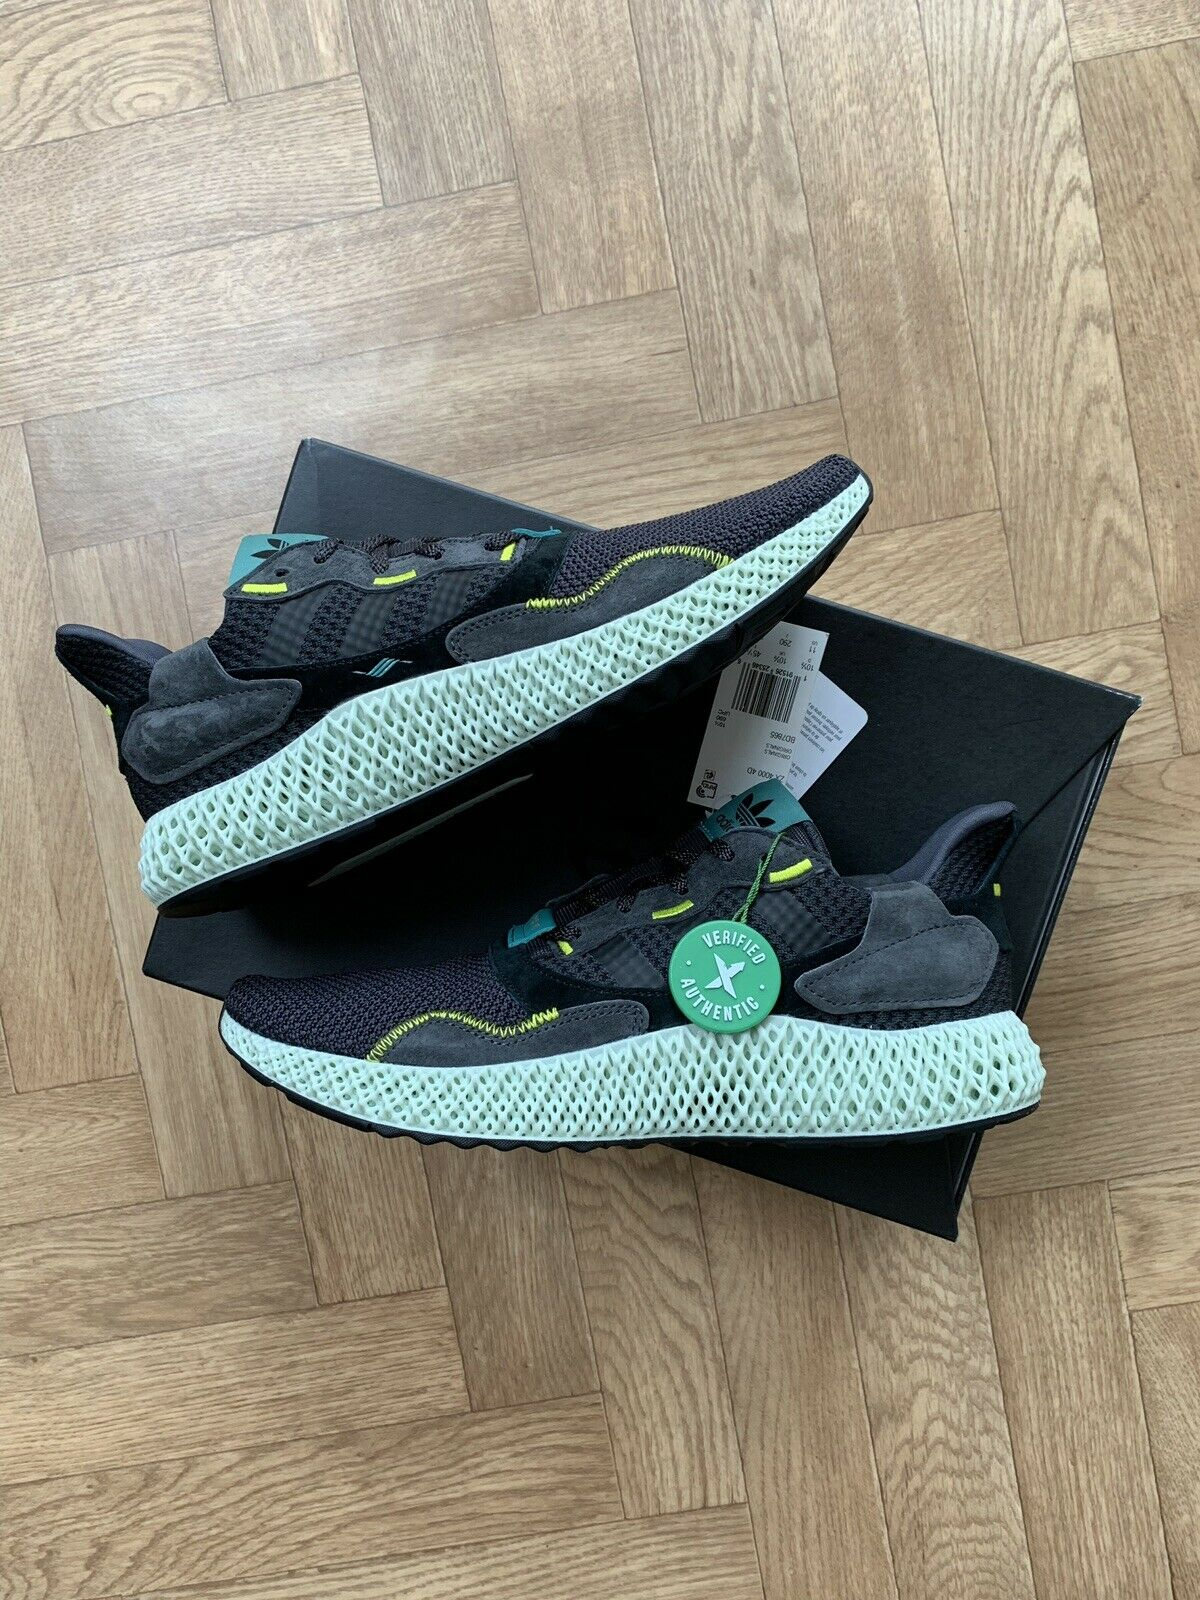 Adidas ZX 4000 4D Futurecraft Carbon Uk Size 10.5 Quality Rare shoes Sold Out.